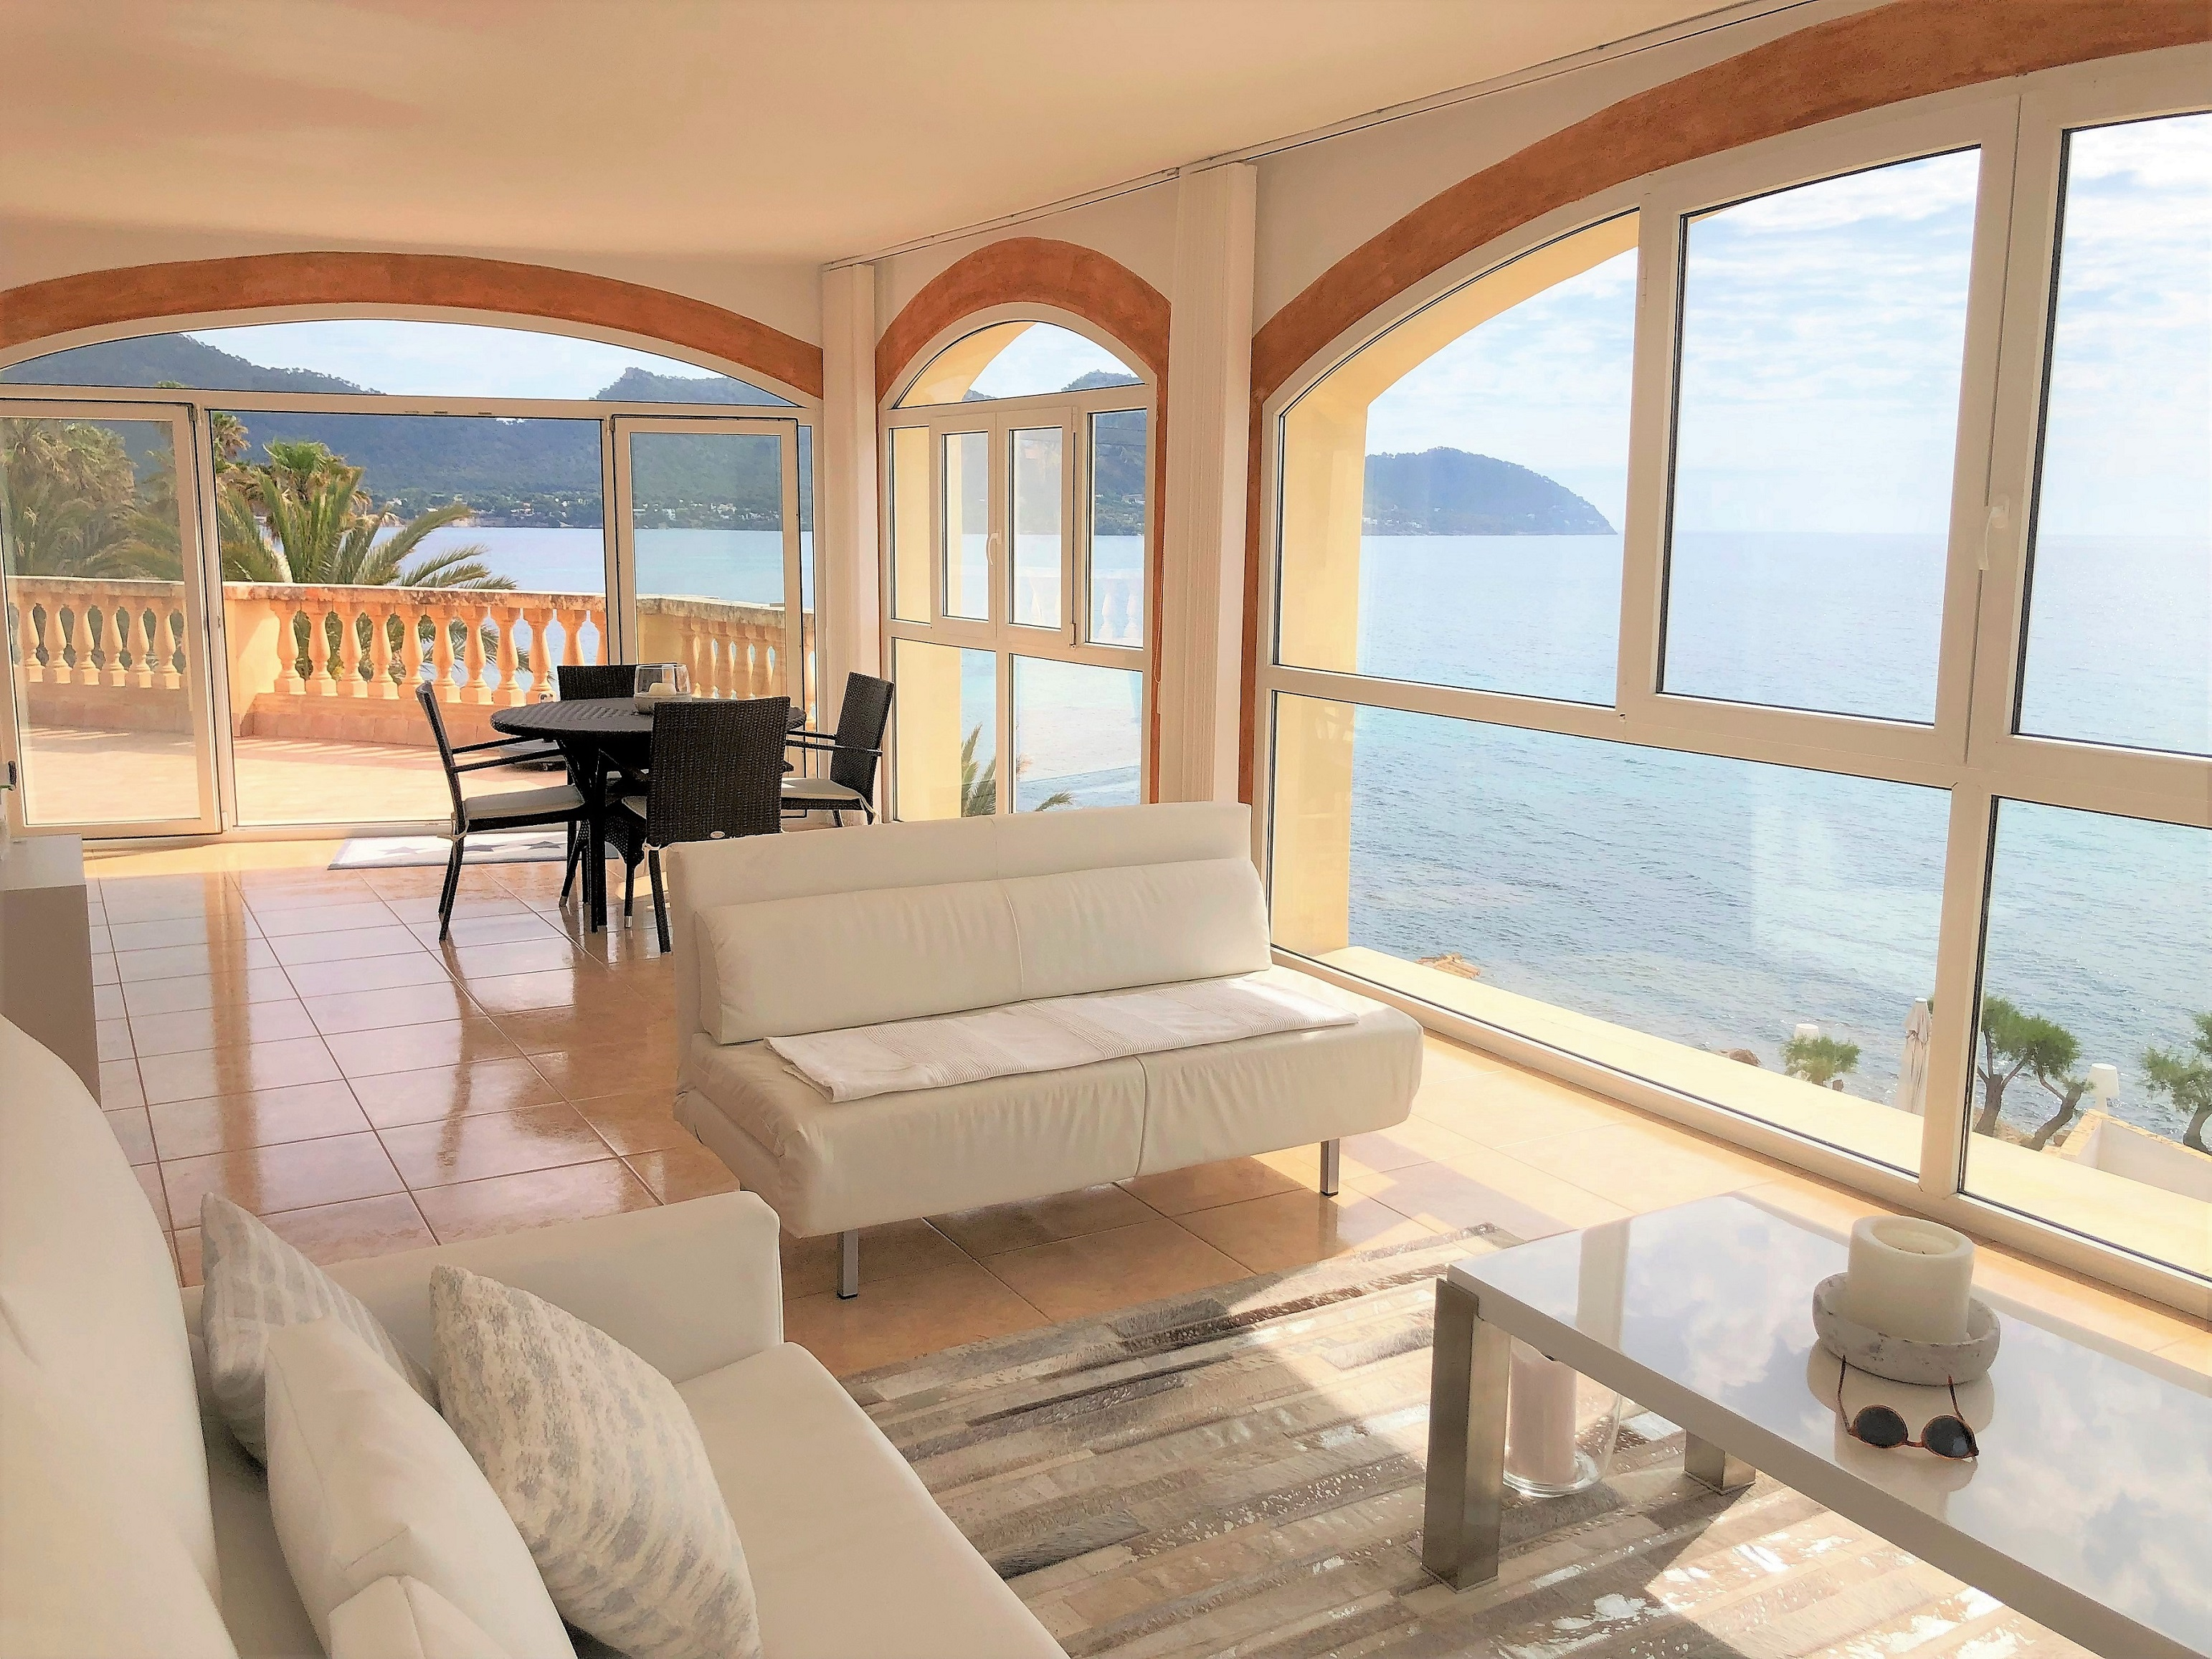 Seafront Longterm rental apartment